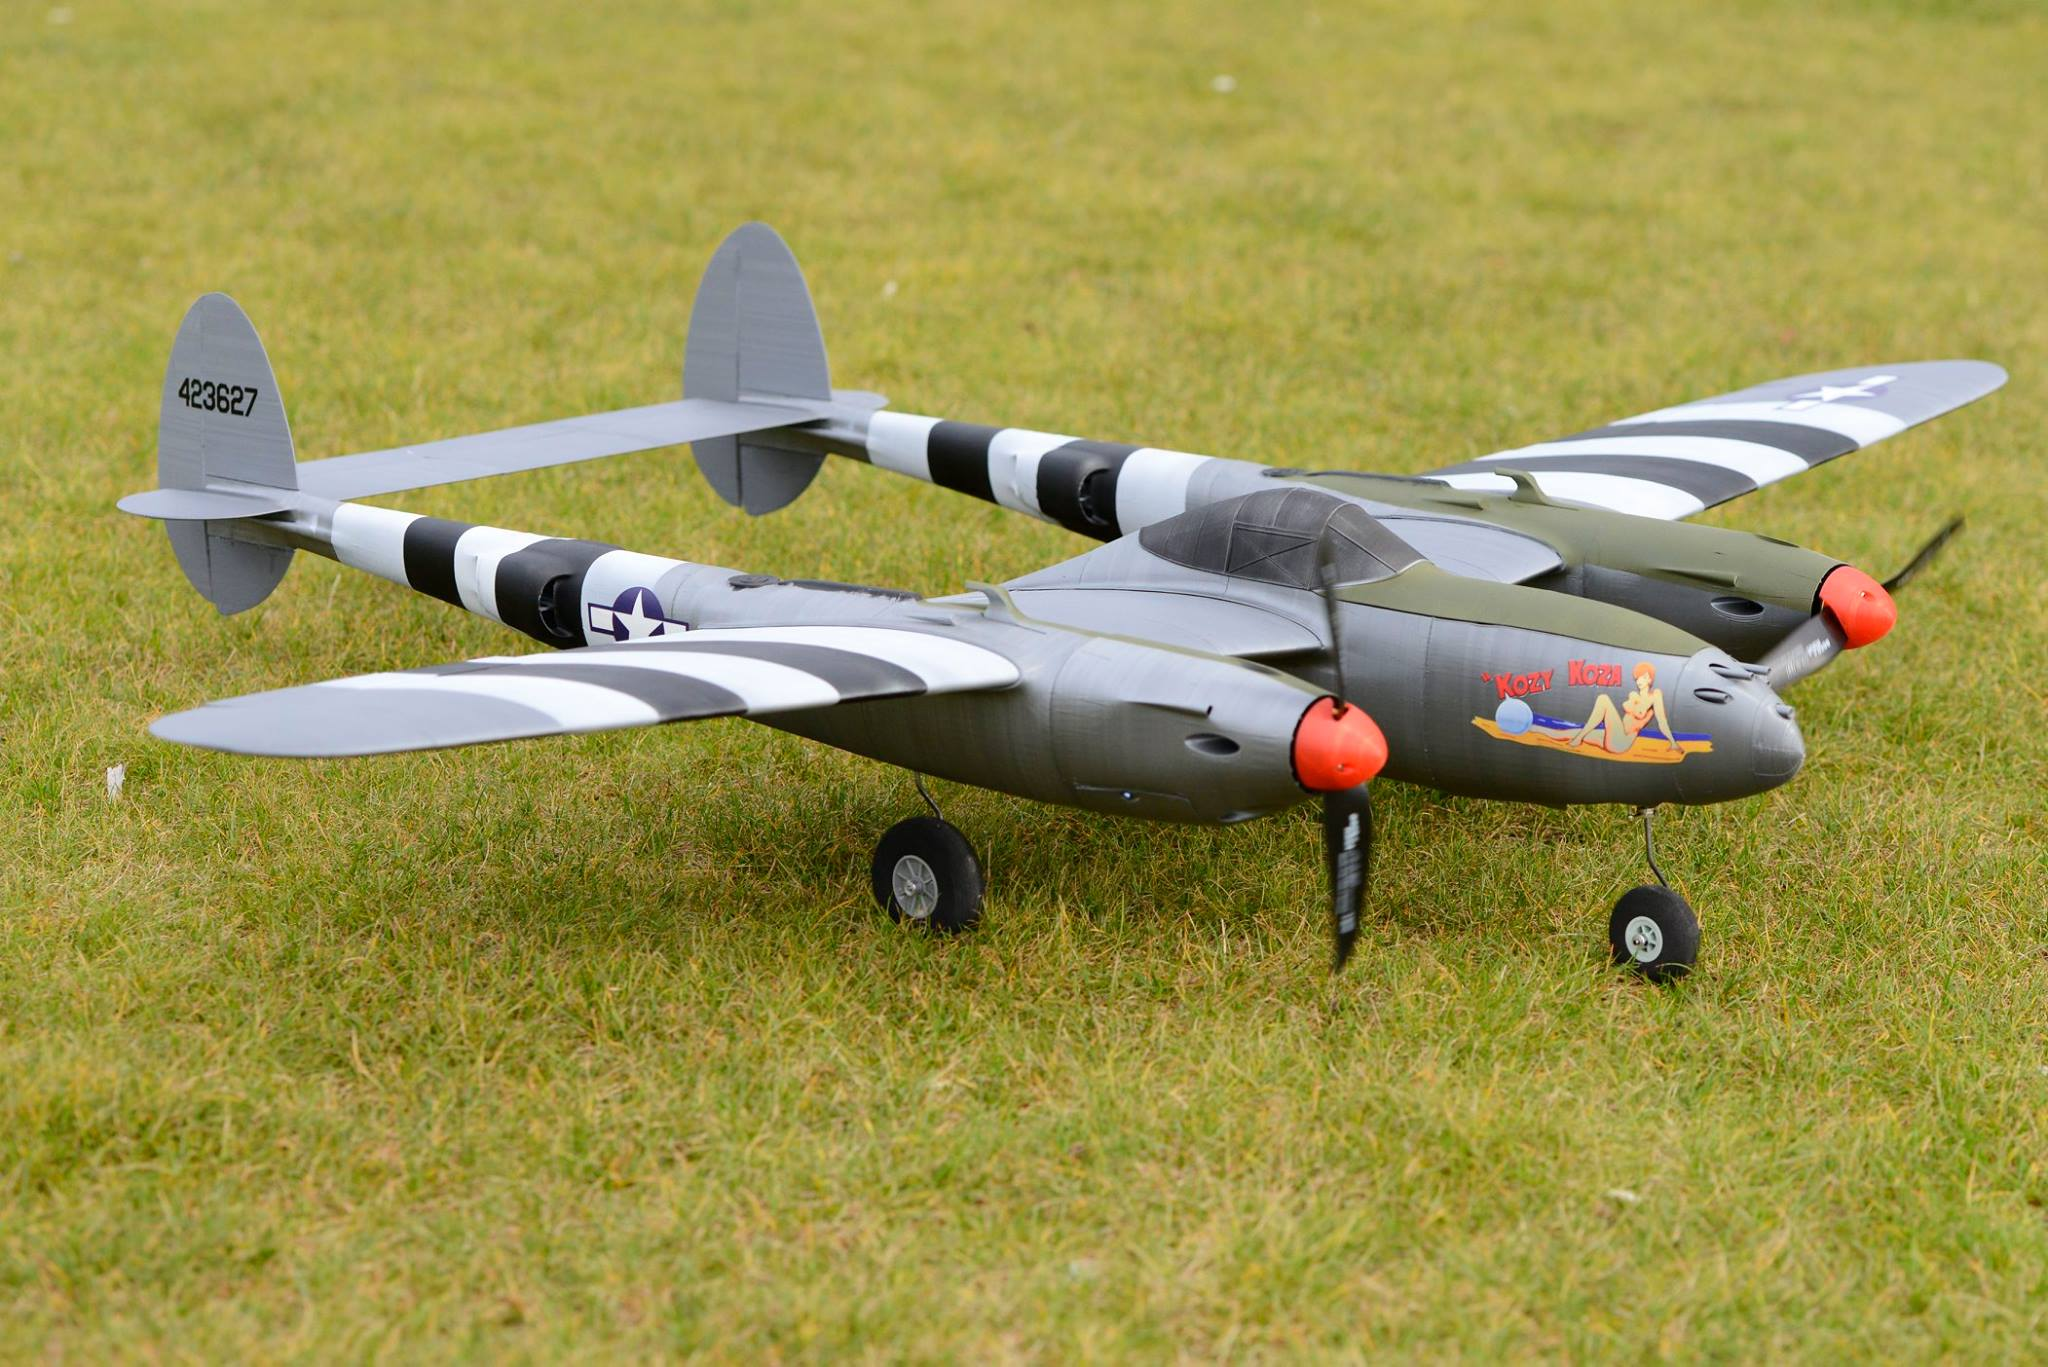 rc plane edge with Lockheed P 38 Lightning on Boeing 747 8 The Wing Design Additional Performance With Lower Noise likewise Bat Flight Versus Bird Flight further Model Airplane Design moreover 298785756499690003 as well Supermarine Spitfire Mkix.